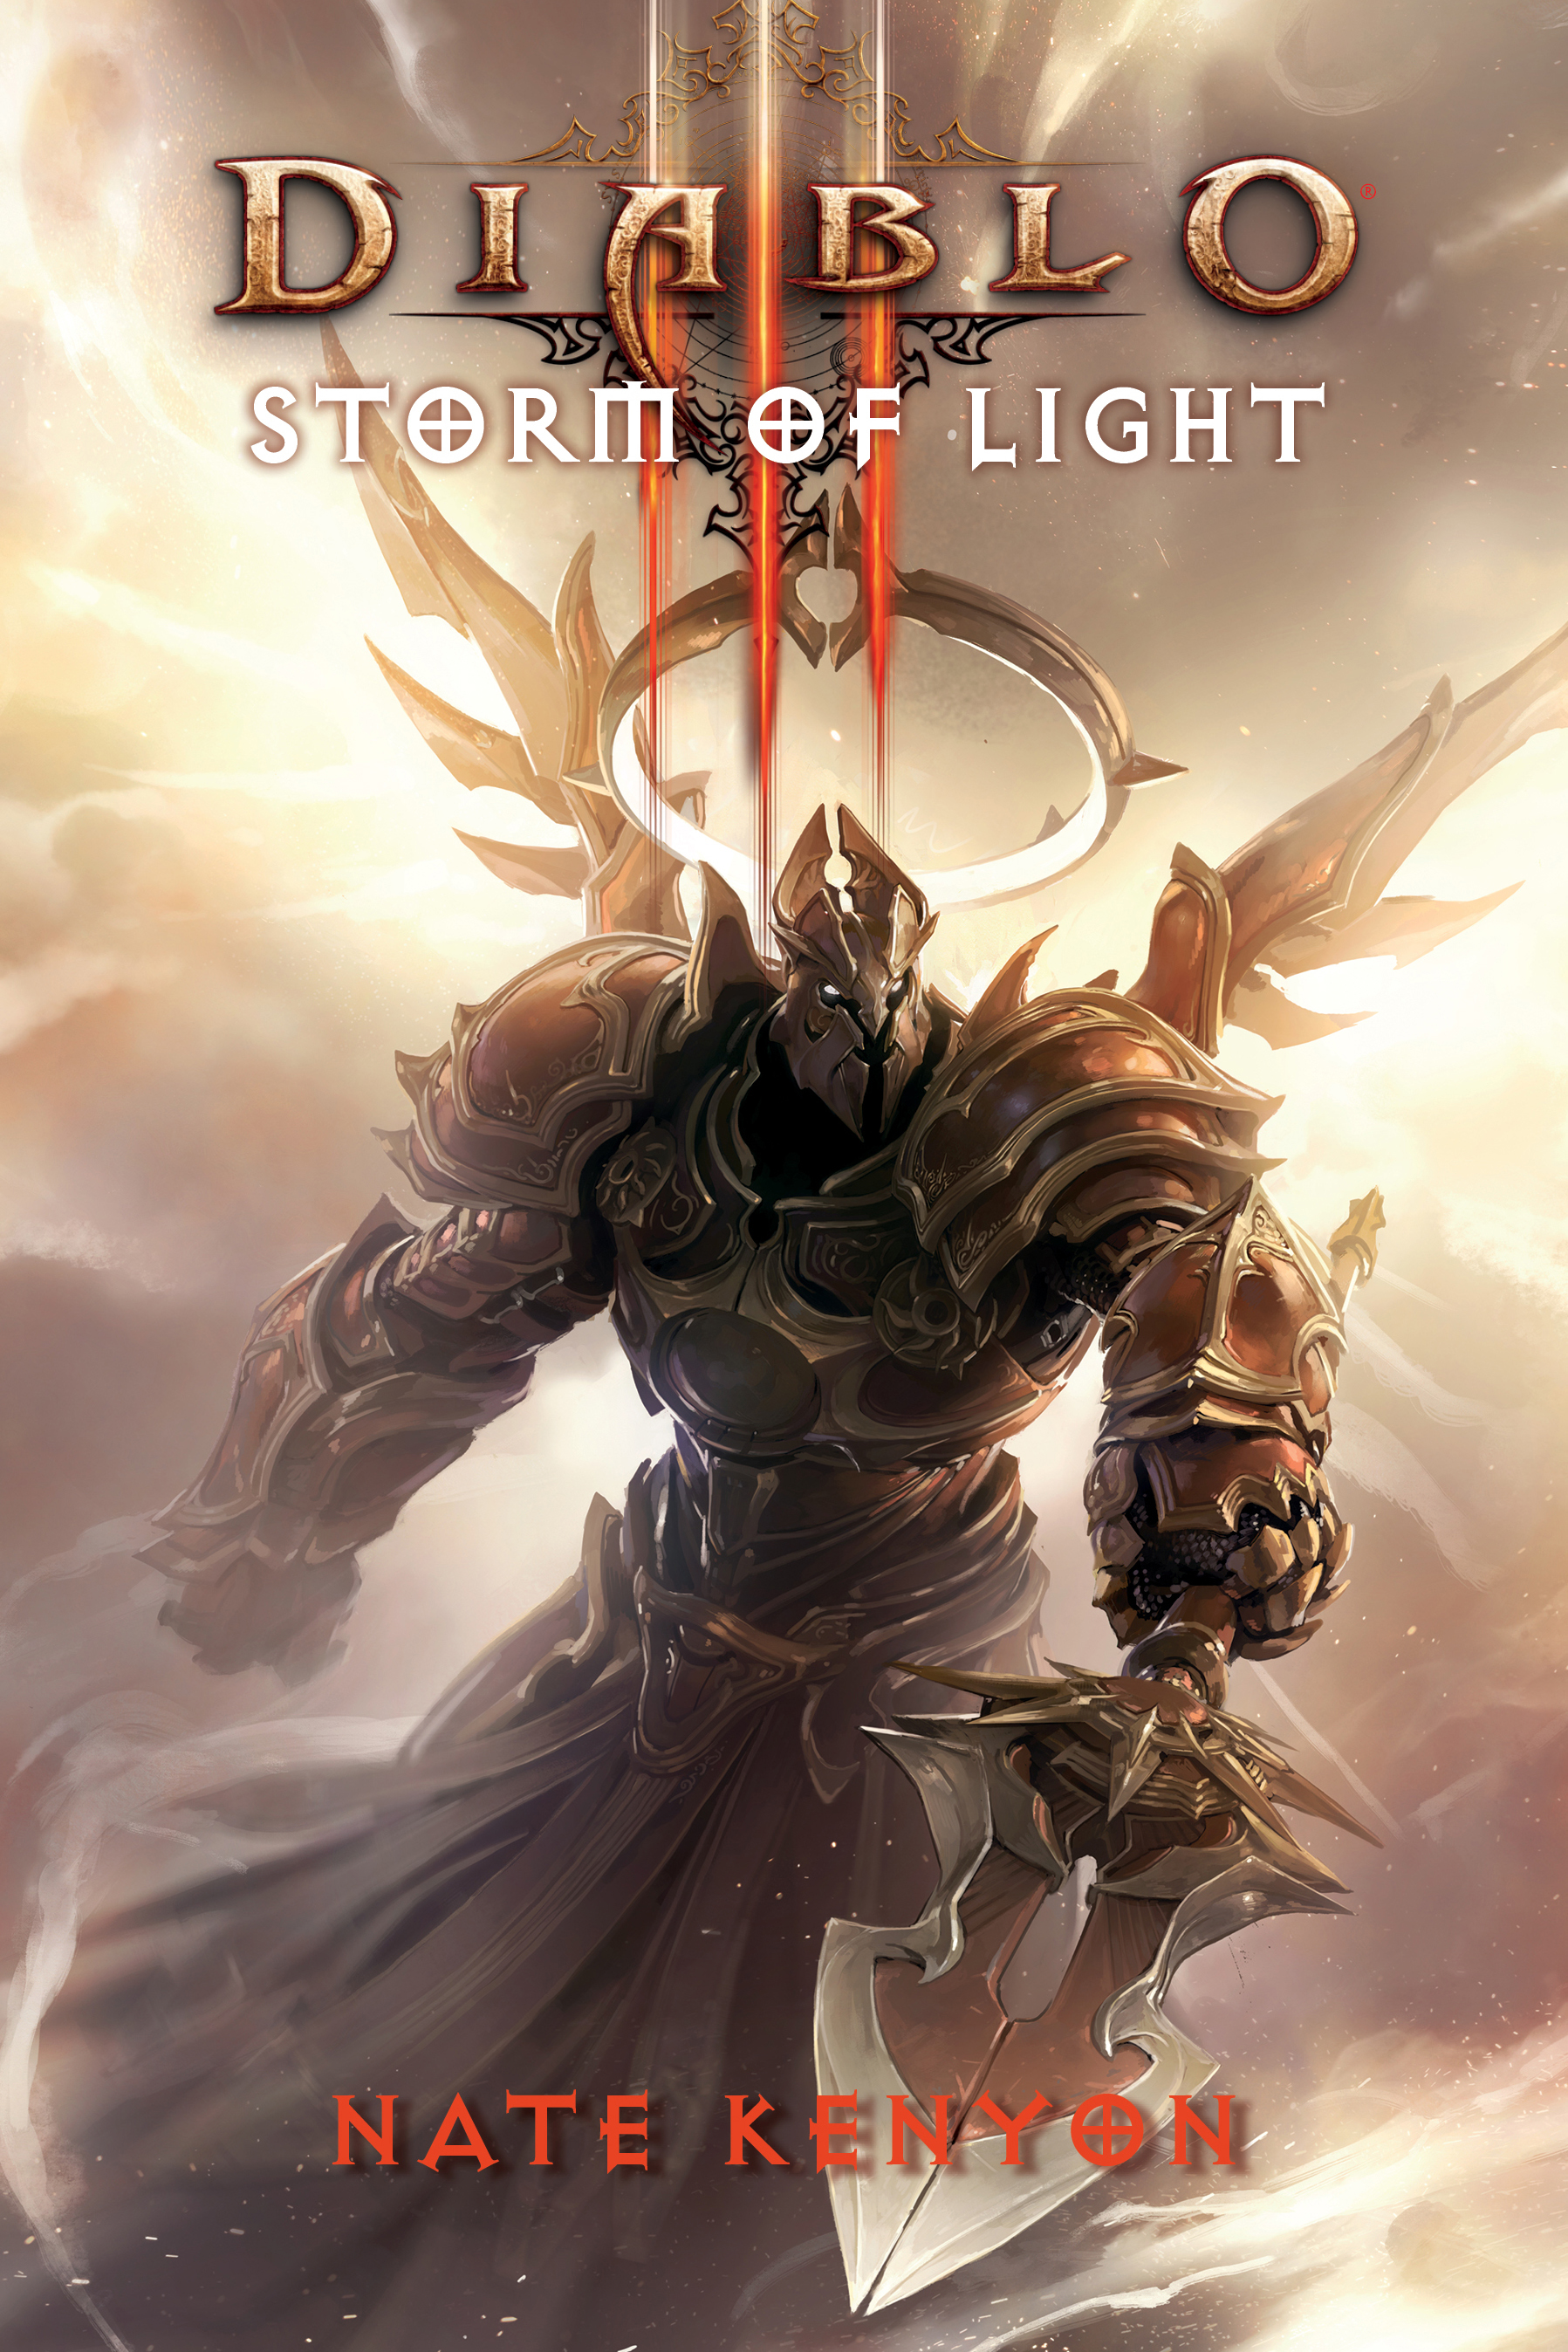 Diablo-iii-storm-of-light-9781416550808_hr